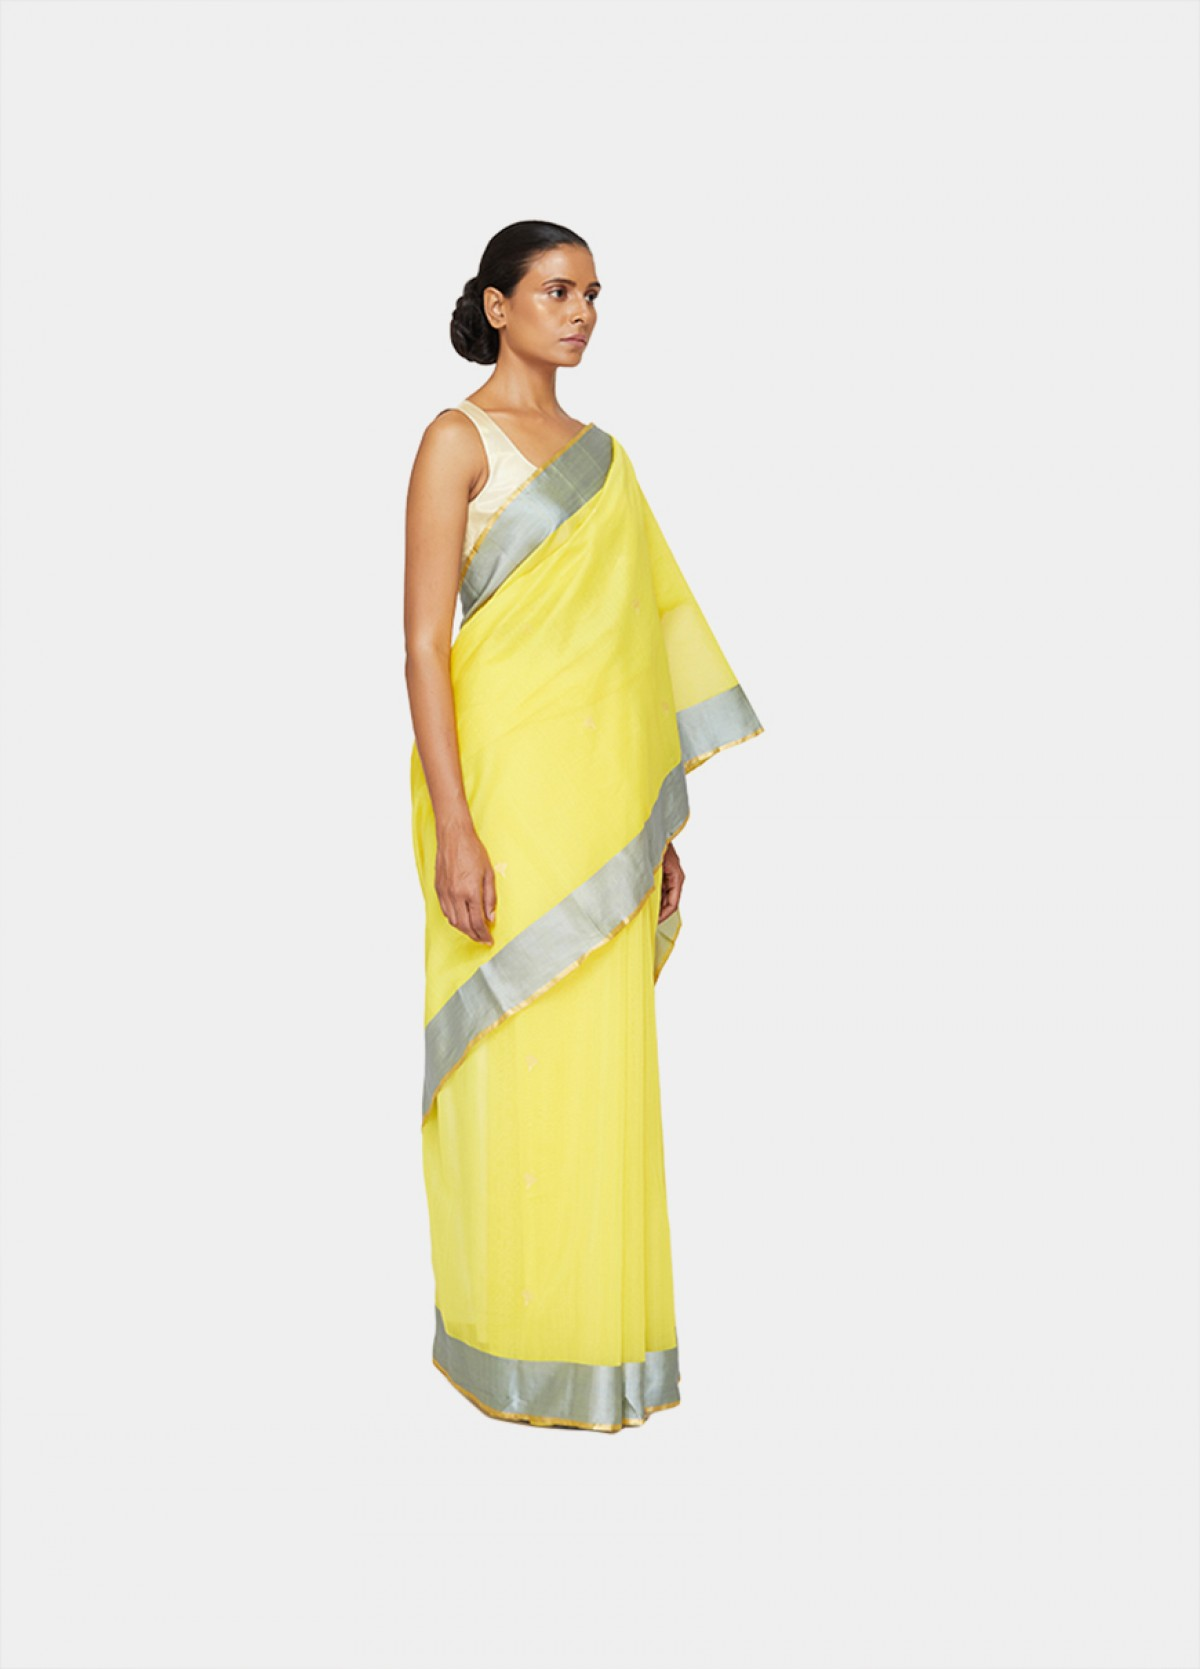 The Mogra Sari